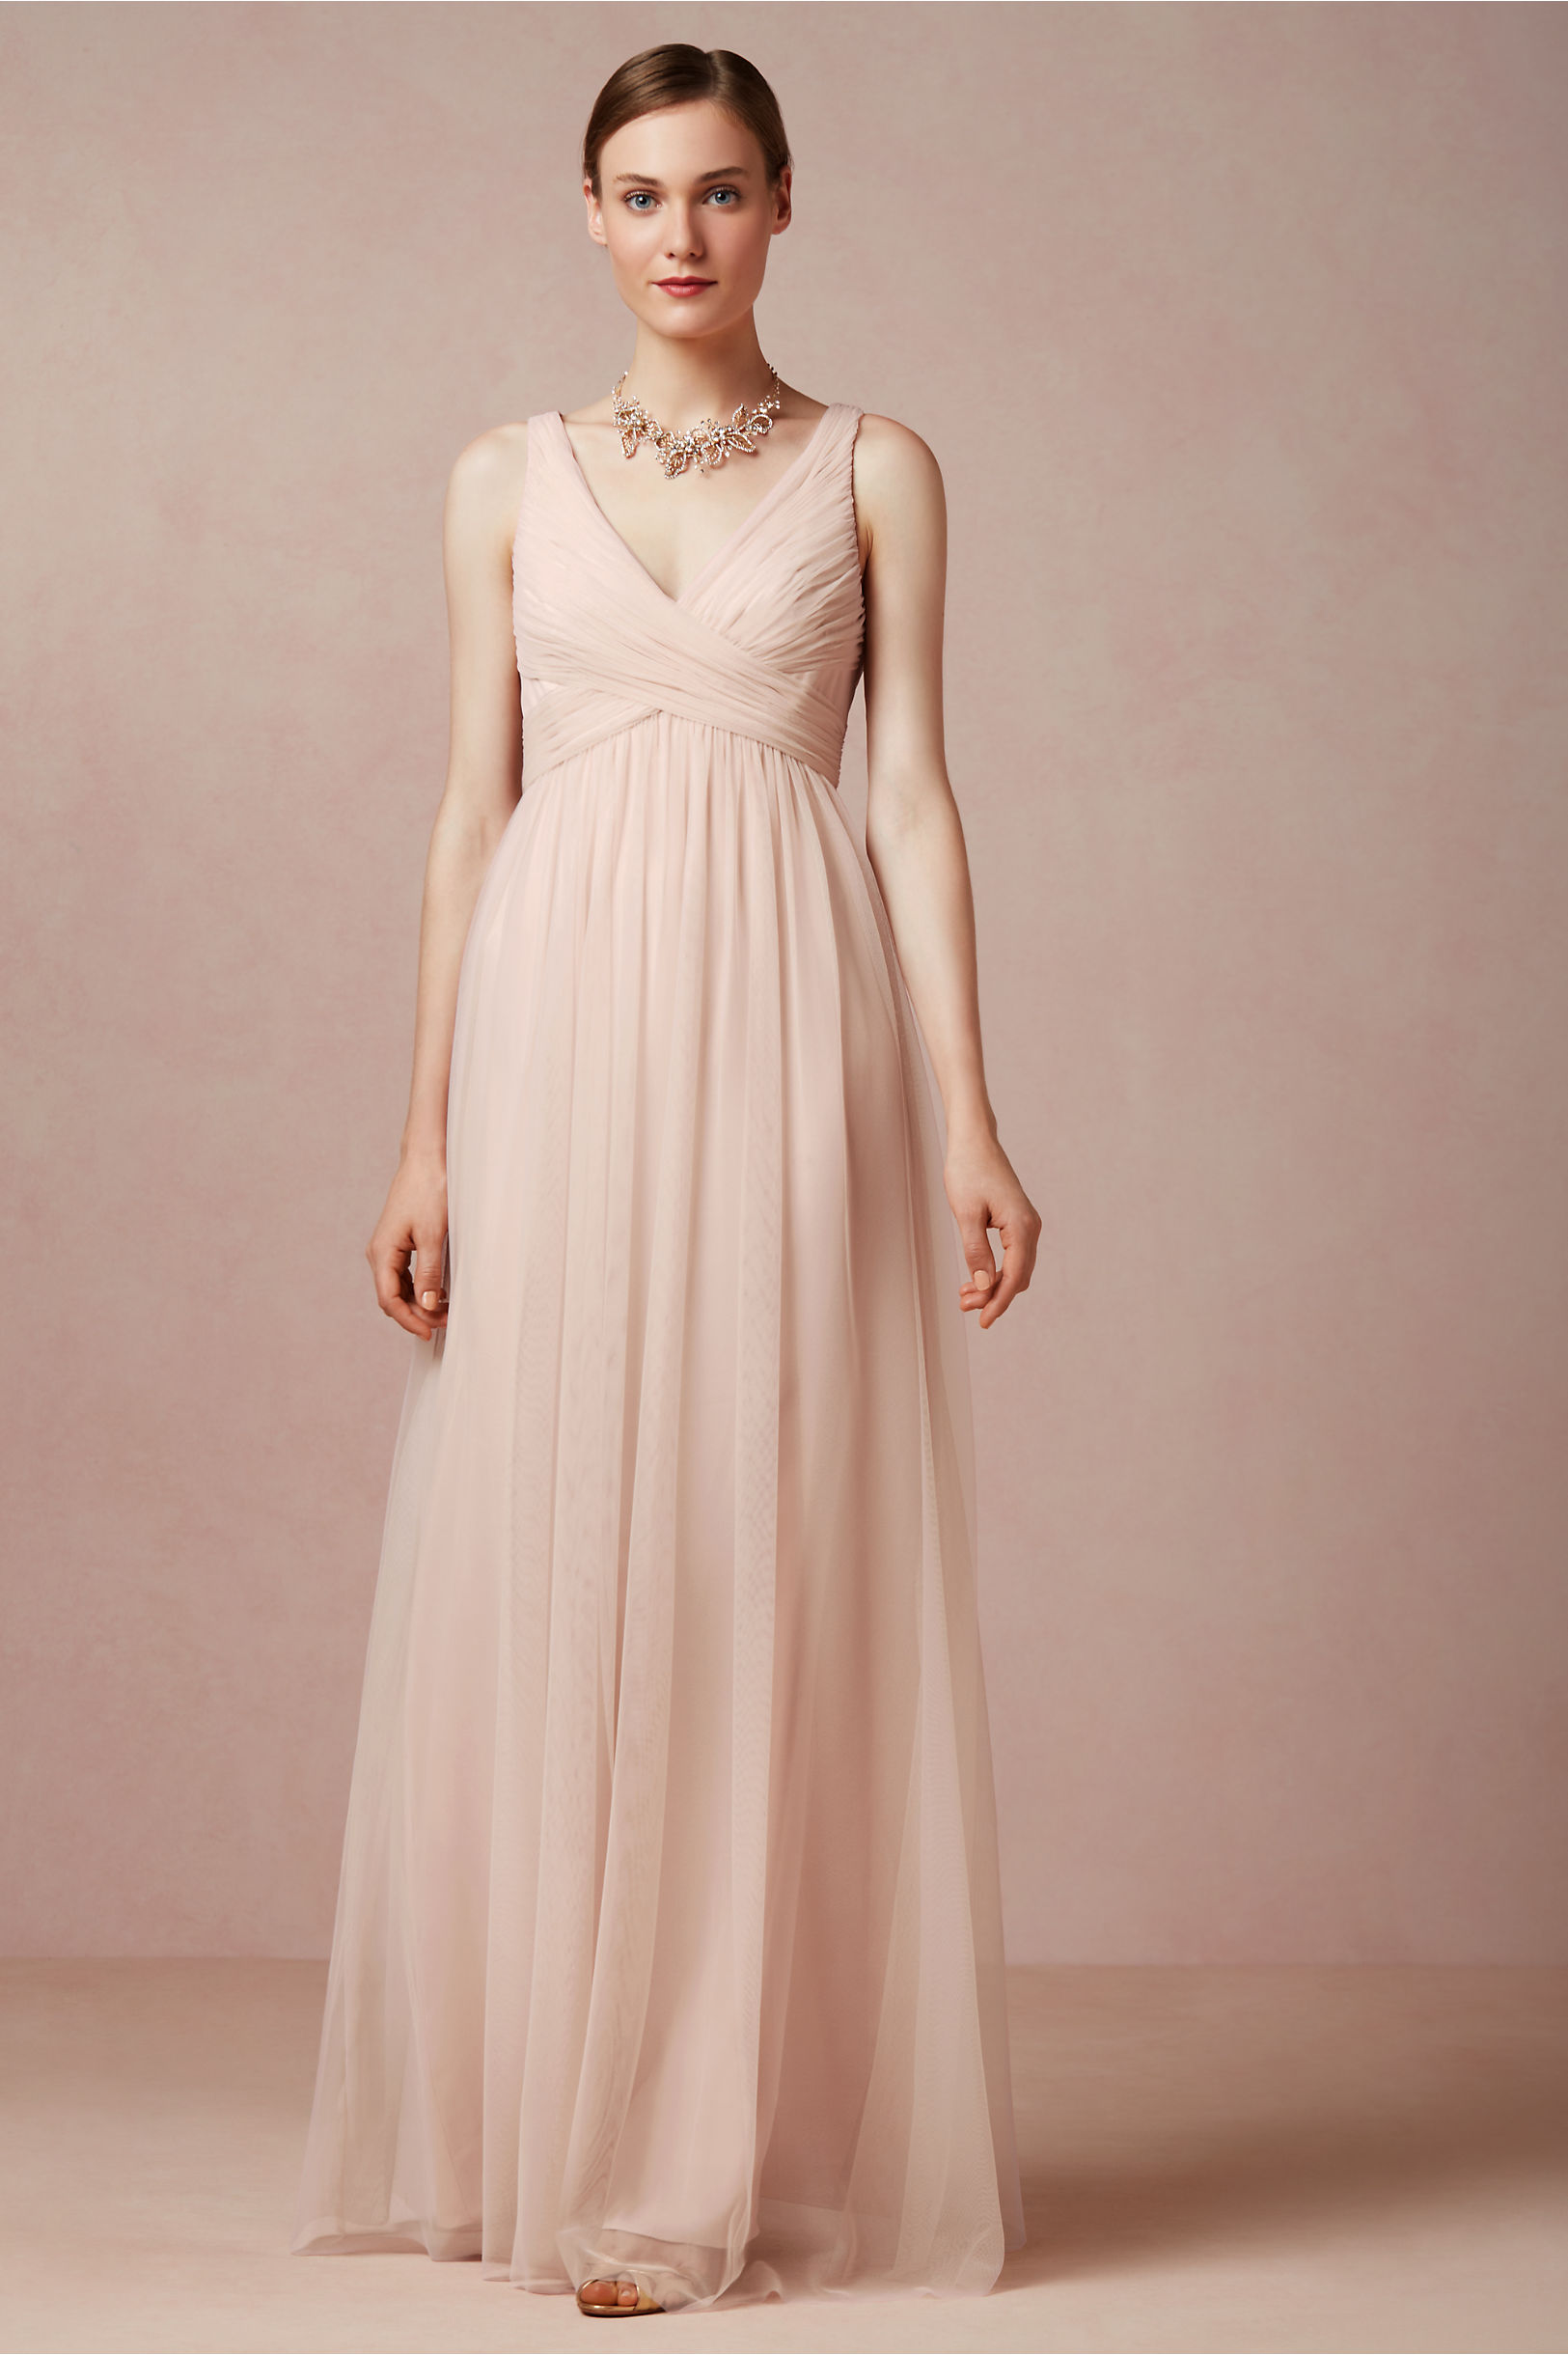 Esme maxi dress in occasion dresses bhldn rose esme maxi dress bhldn ombrellifo Gallery